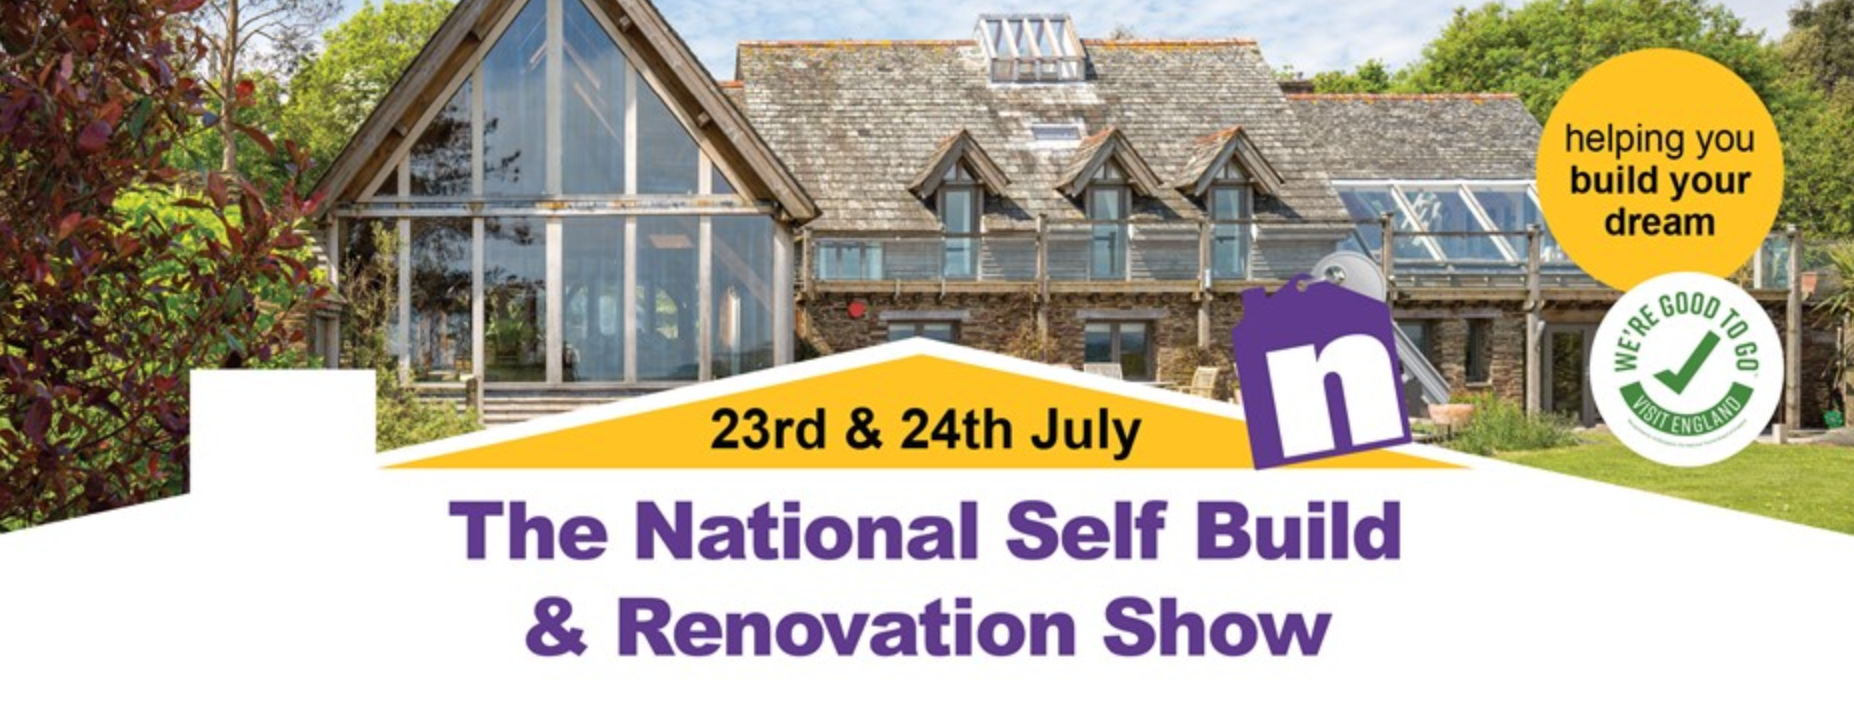 The National Self Build and Renovation Show 2021